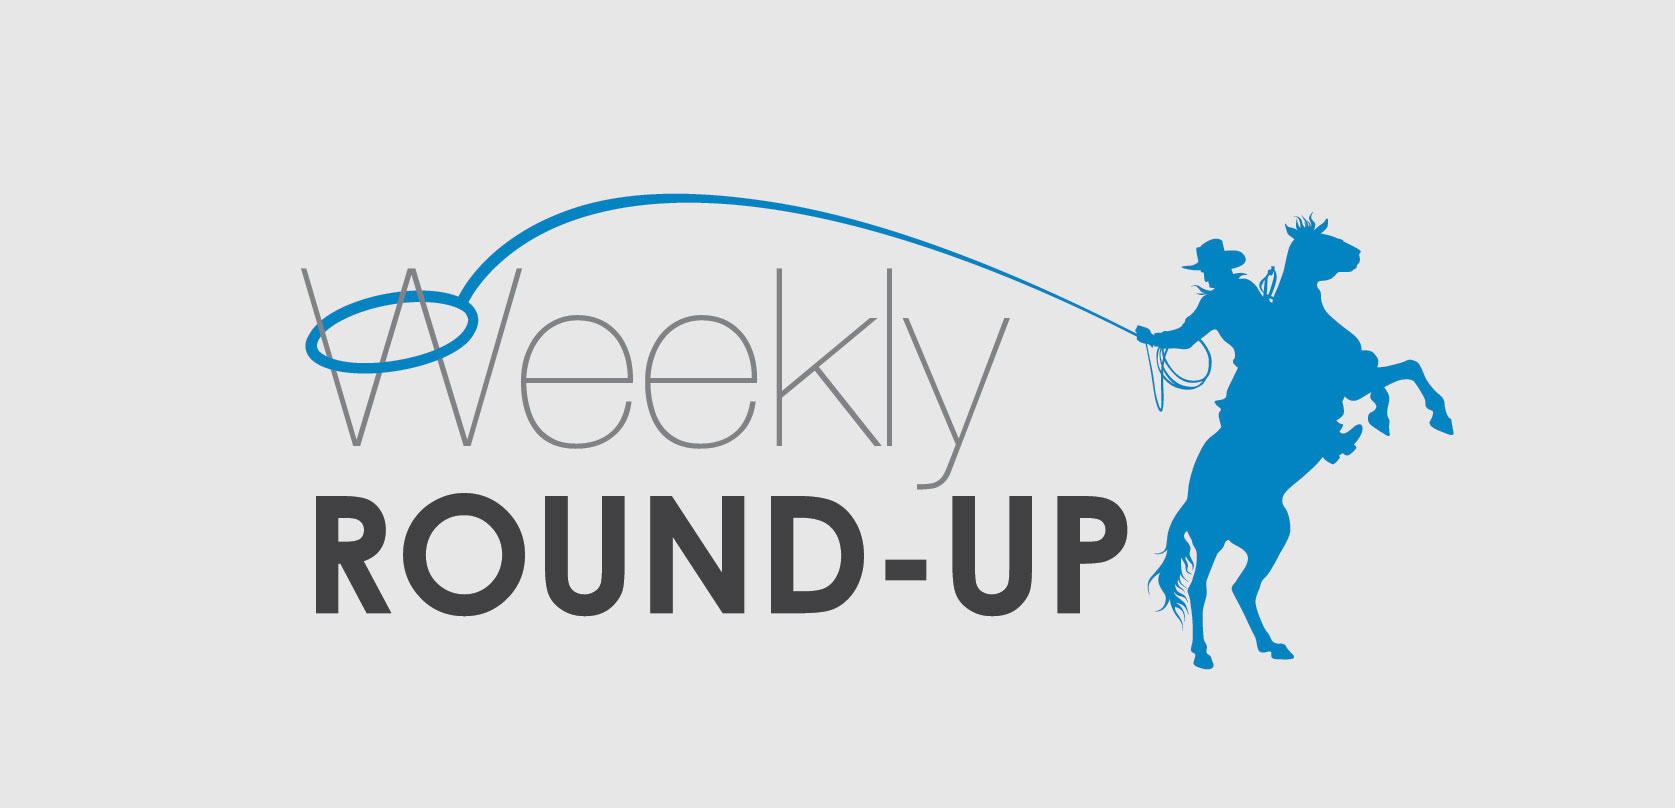 weekly round-up, bloggers to follow, david grossman, the grossman group, leadership blogs